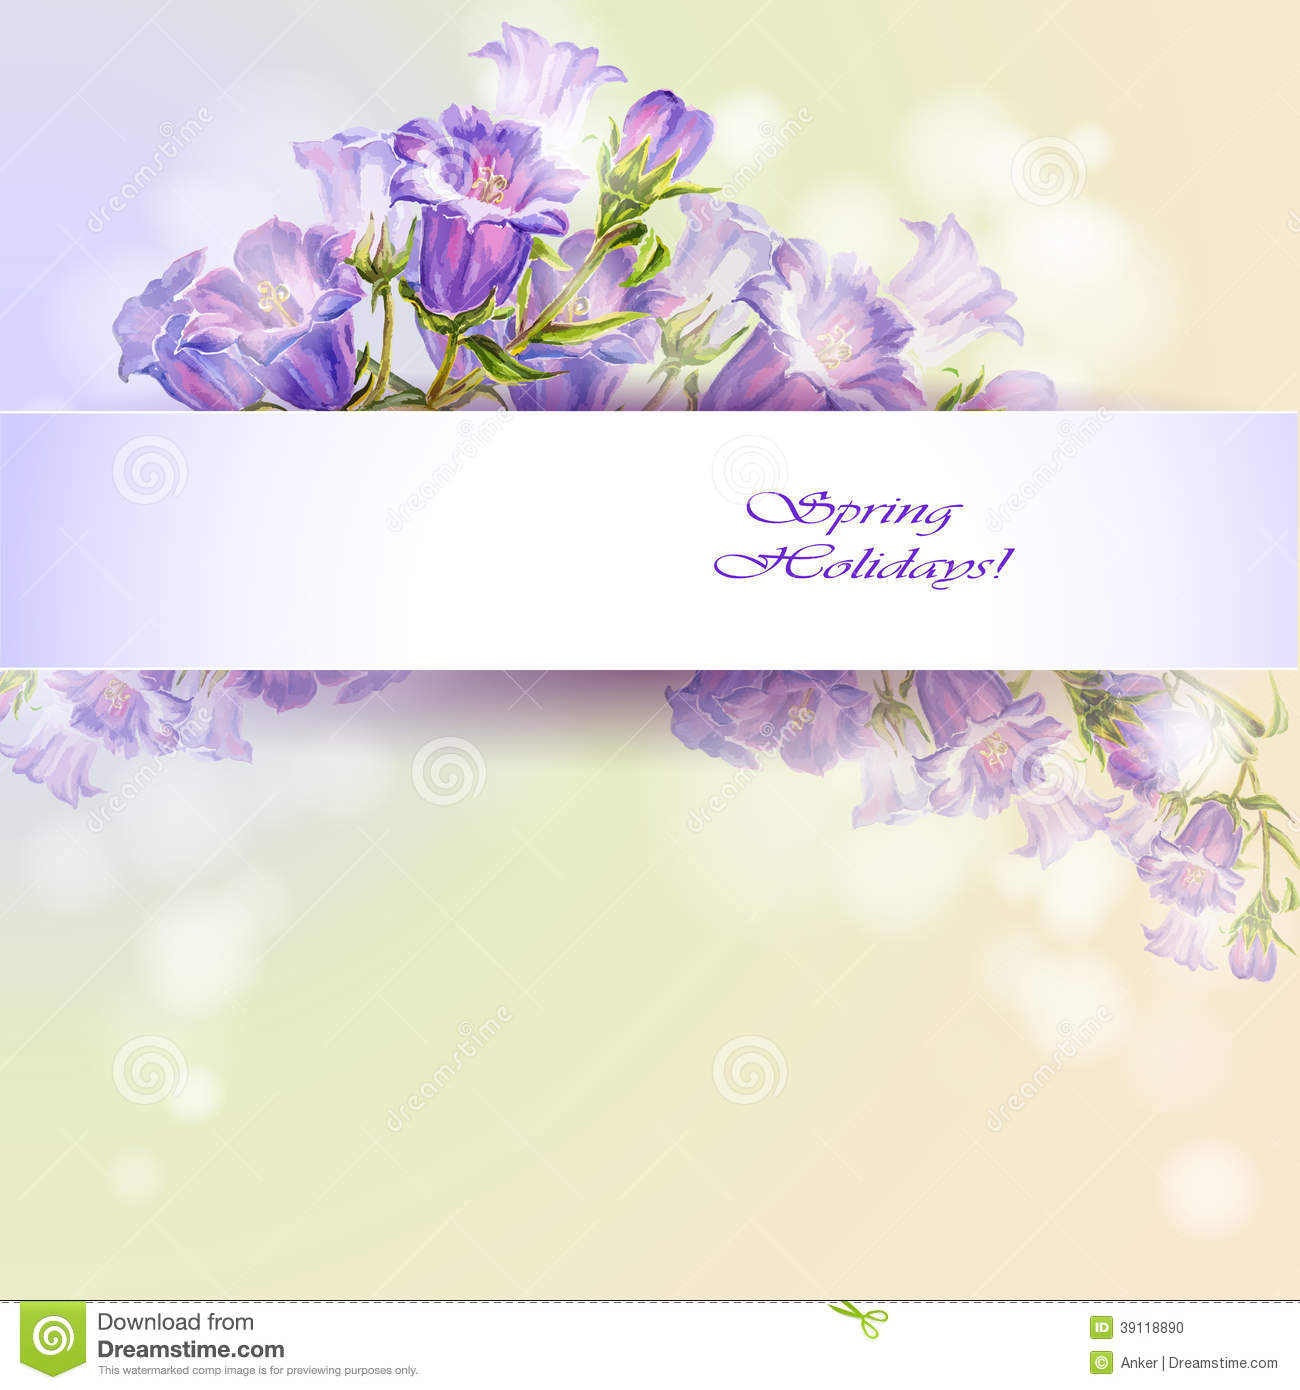 spring flowers invitation template card illustration 39118890 megapixl